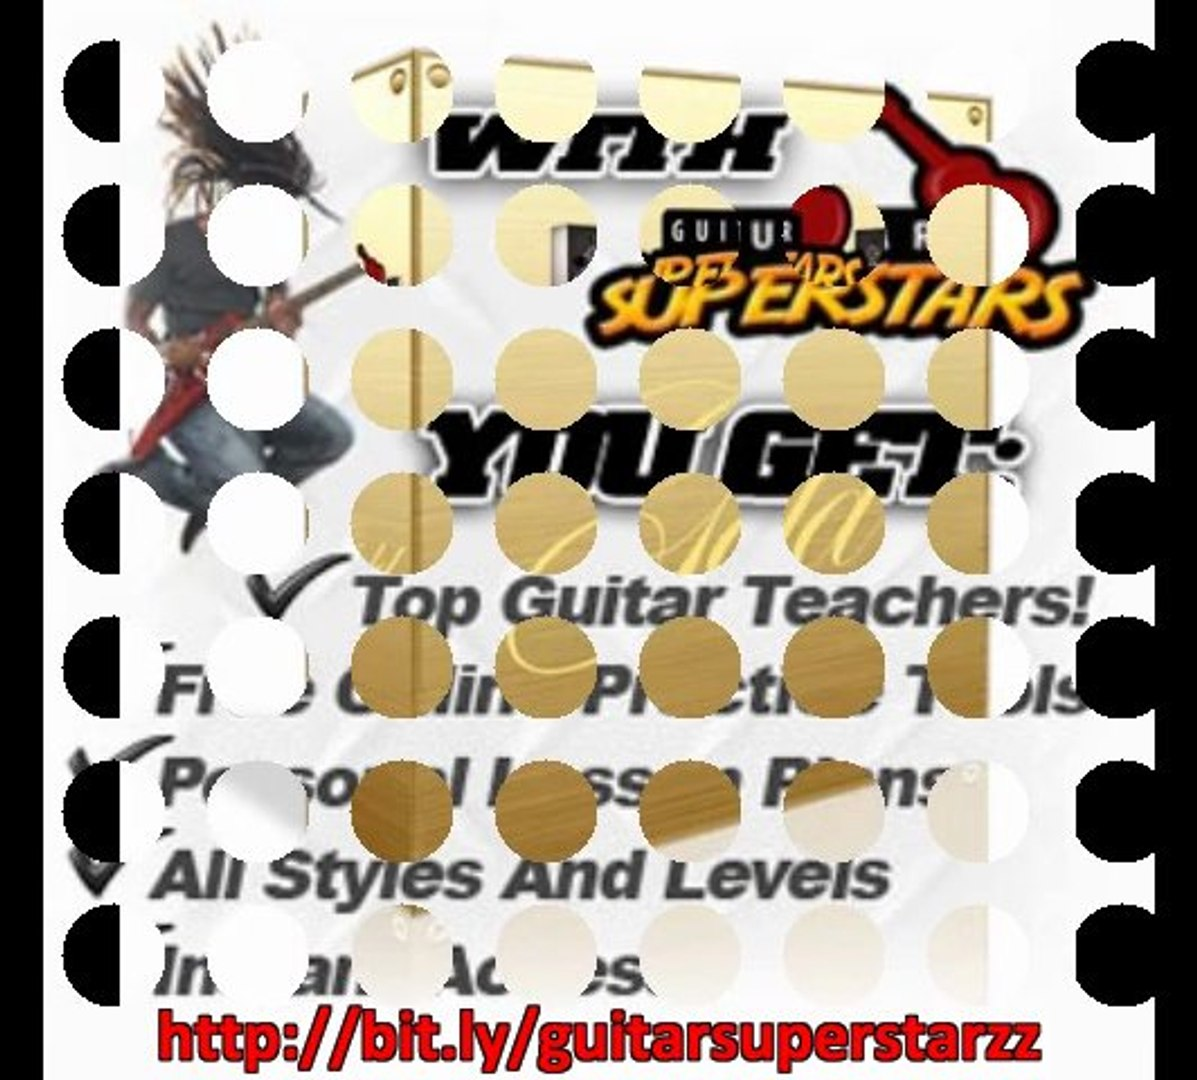 learn how to play guitar on video